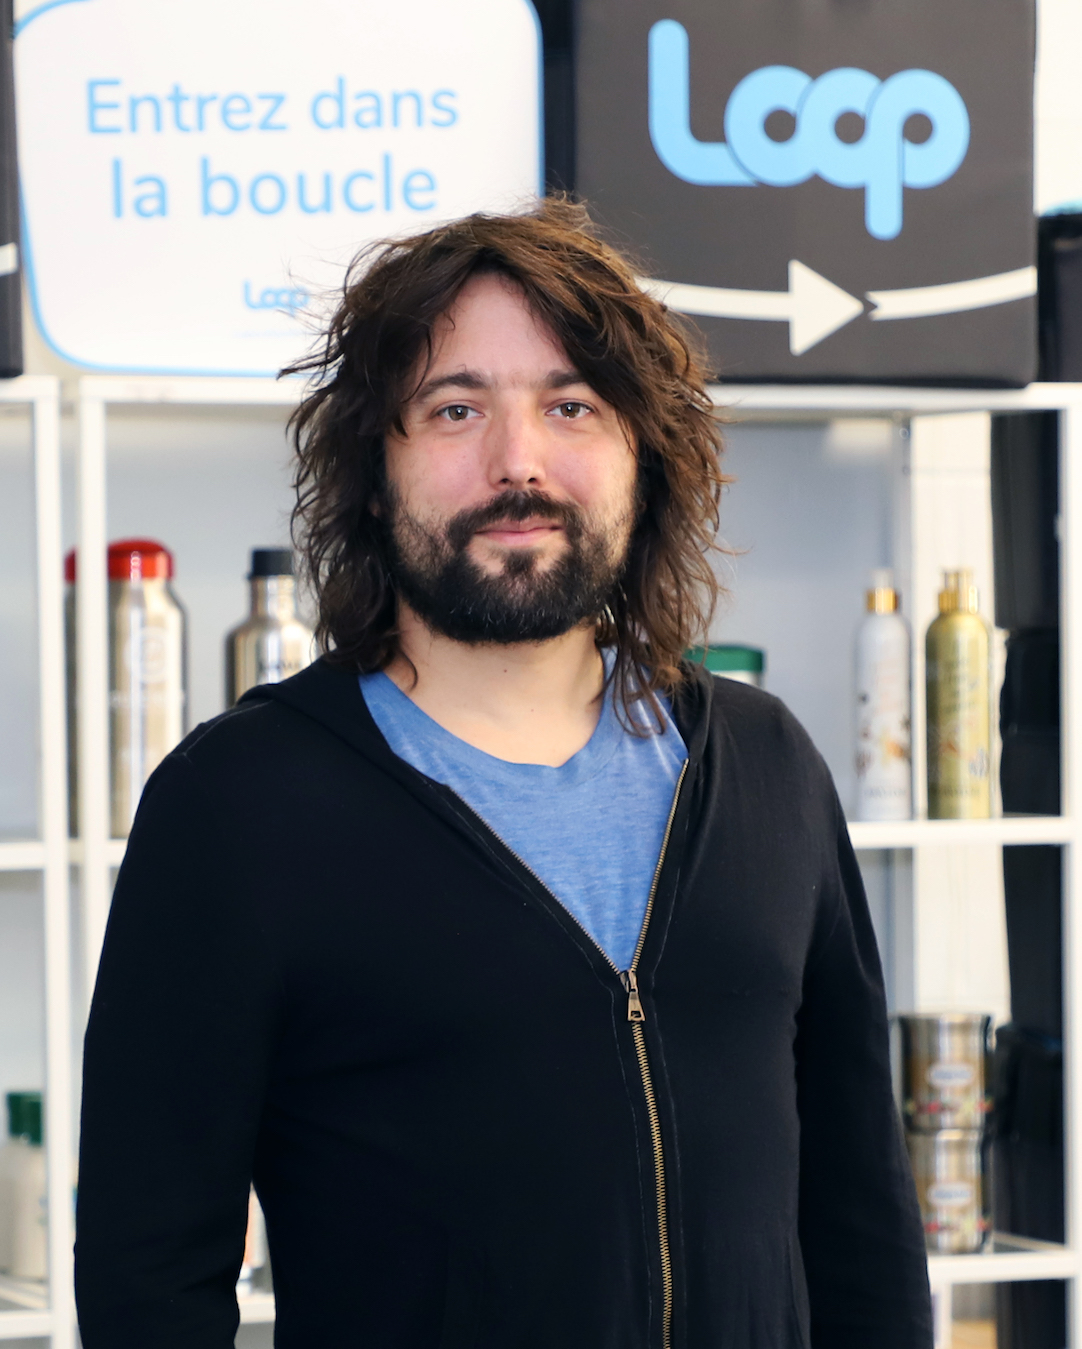 Tom Szaky Terracycle recycling ChangeNow Loop